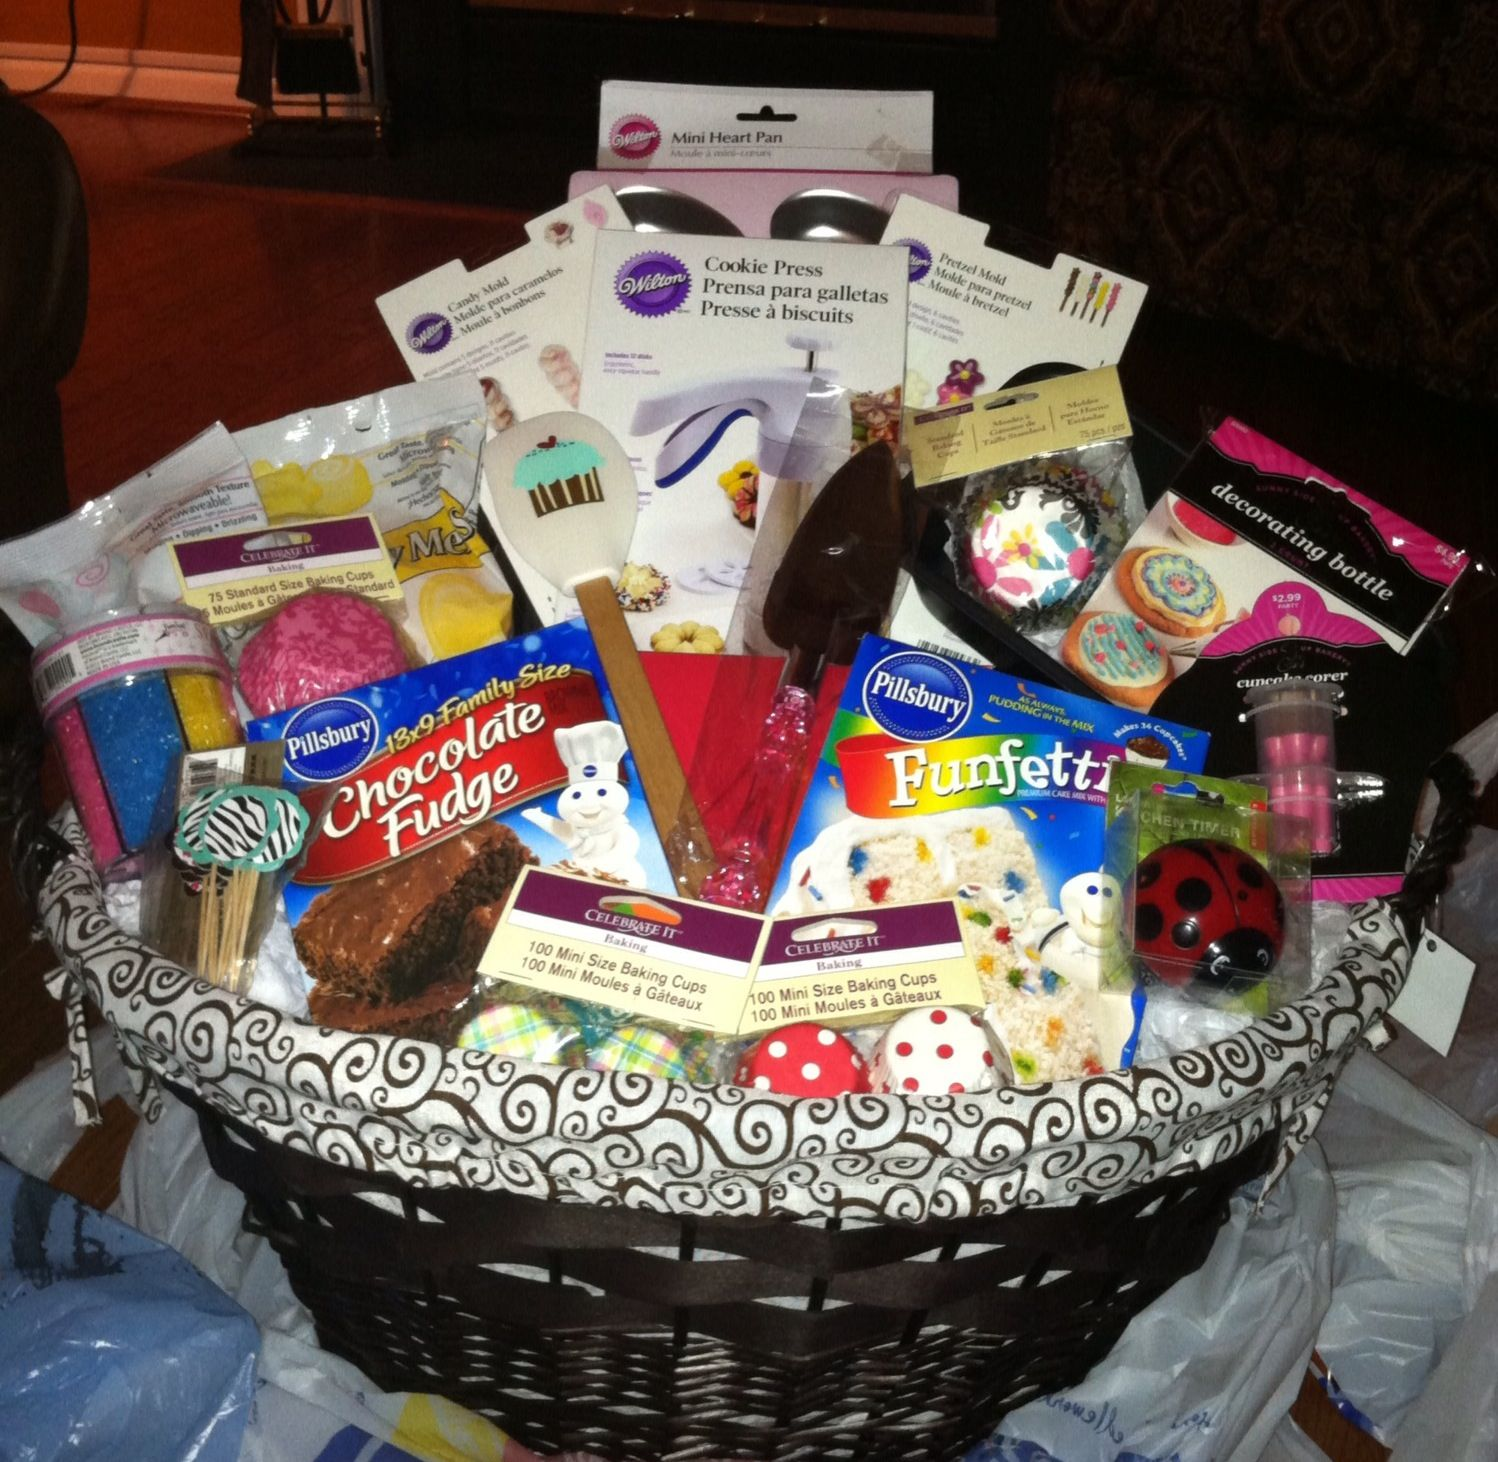 All things baking gift basket for a bridetobe makes